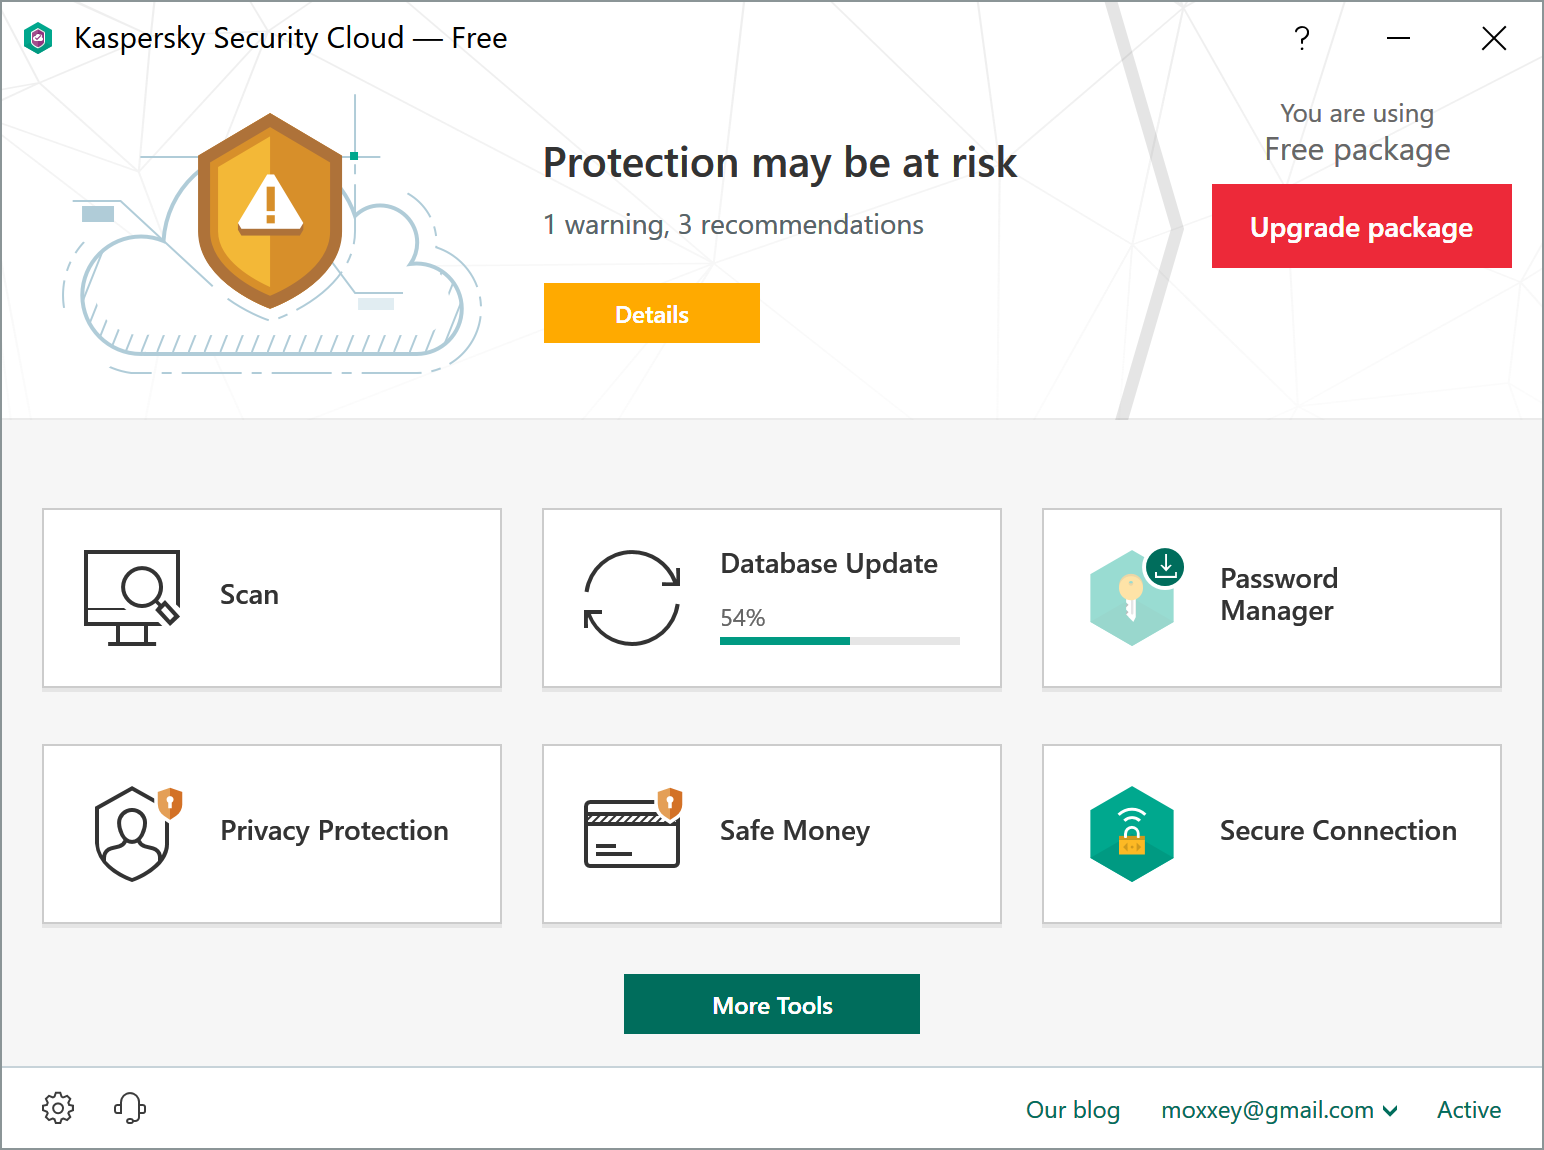 Best Free Password Manager 2020 Kaspersky Security Cloud Free 2020 v20.0.14.1085 free download